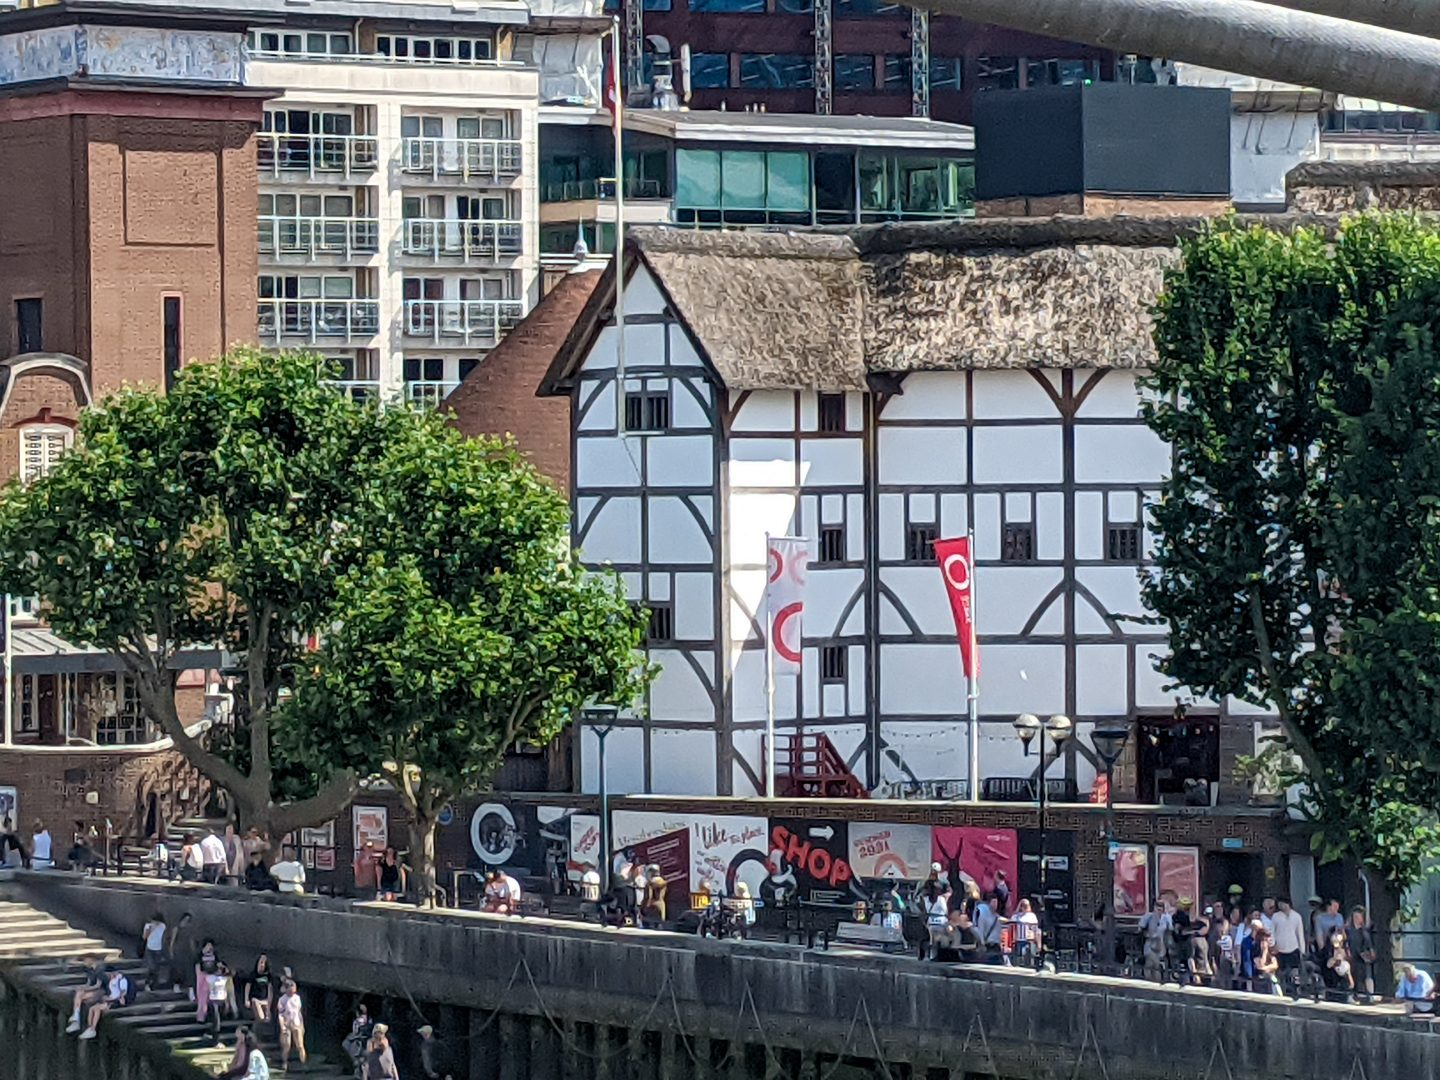 A view of Shakespeare's Globe Theatre on the Southbank, London